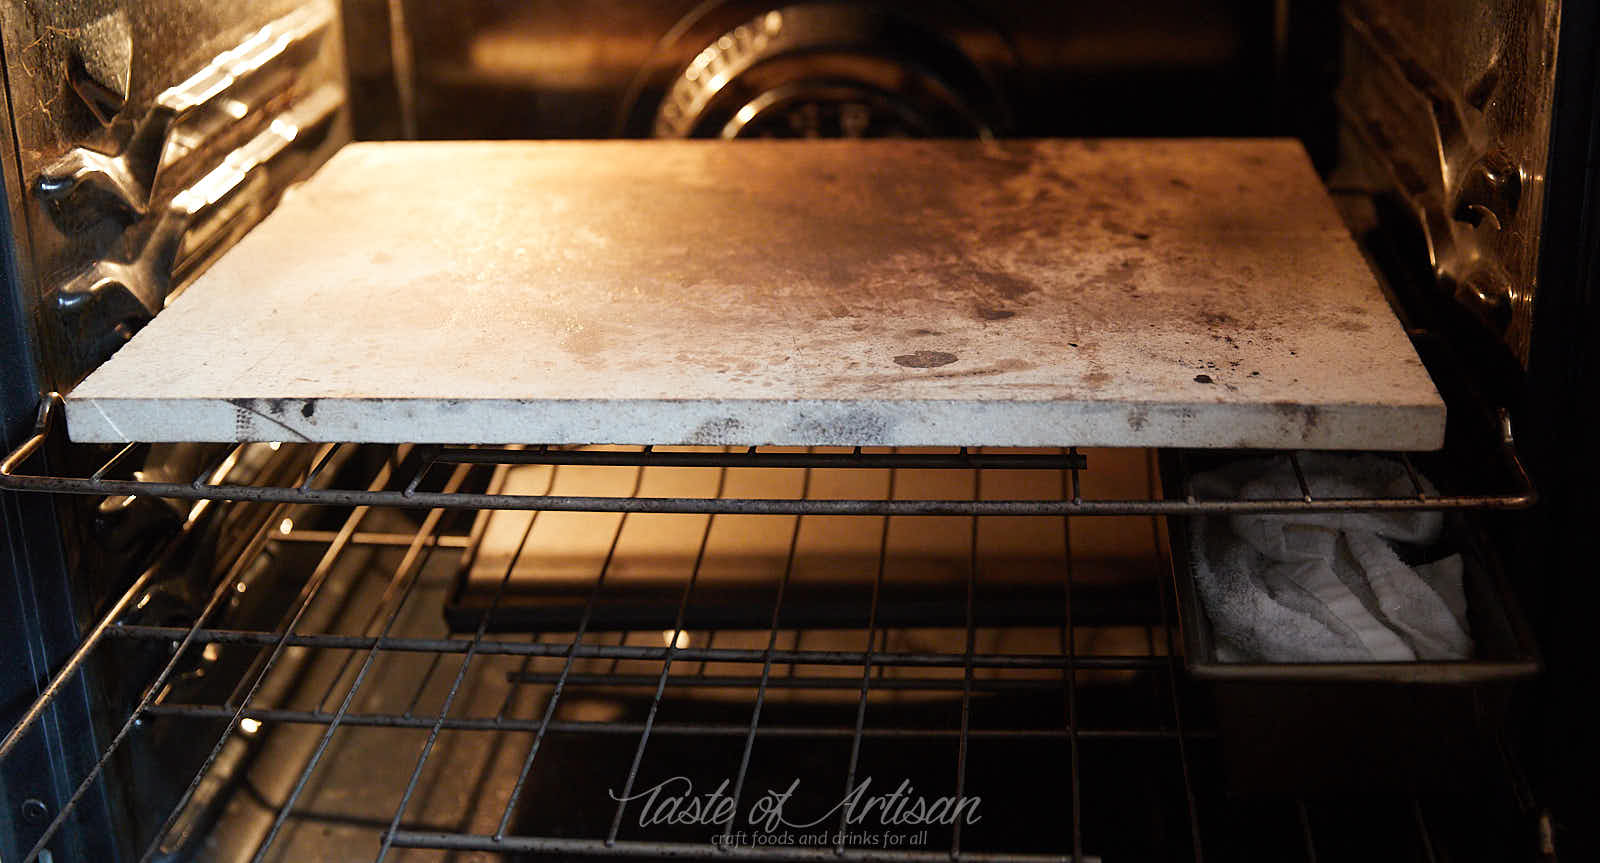 Baking stone and water pan preheating in the oven.